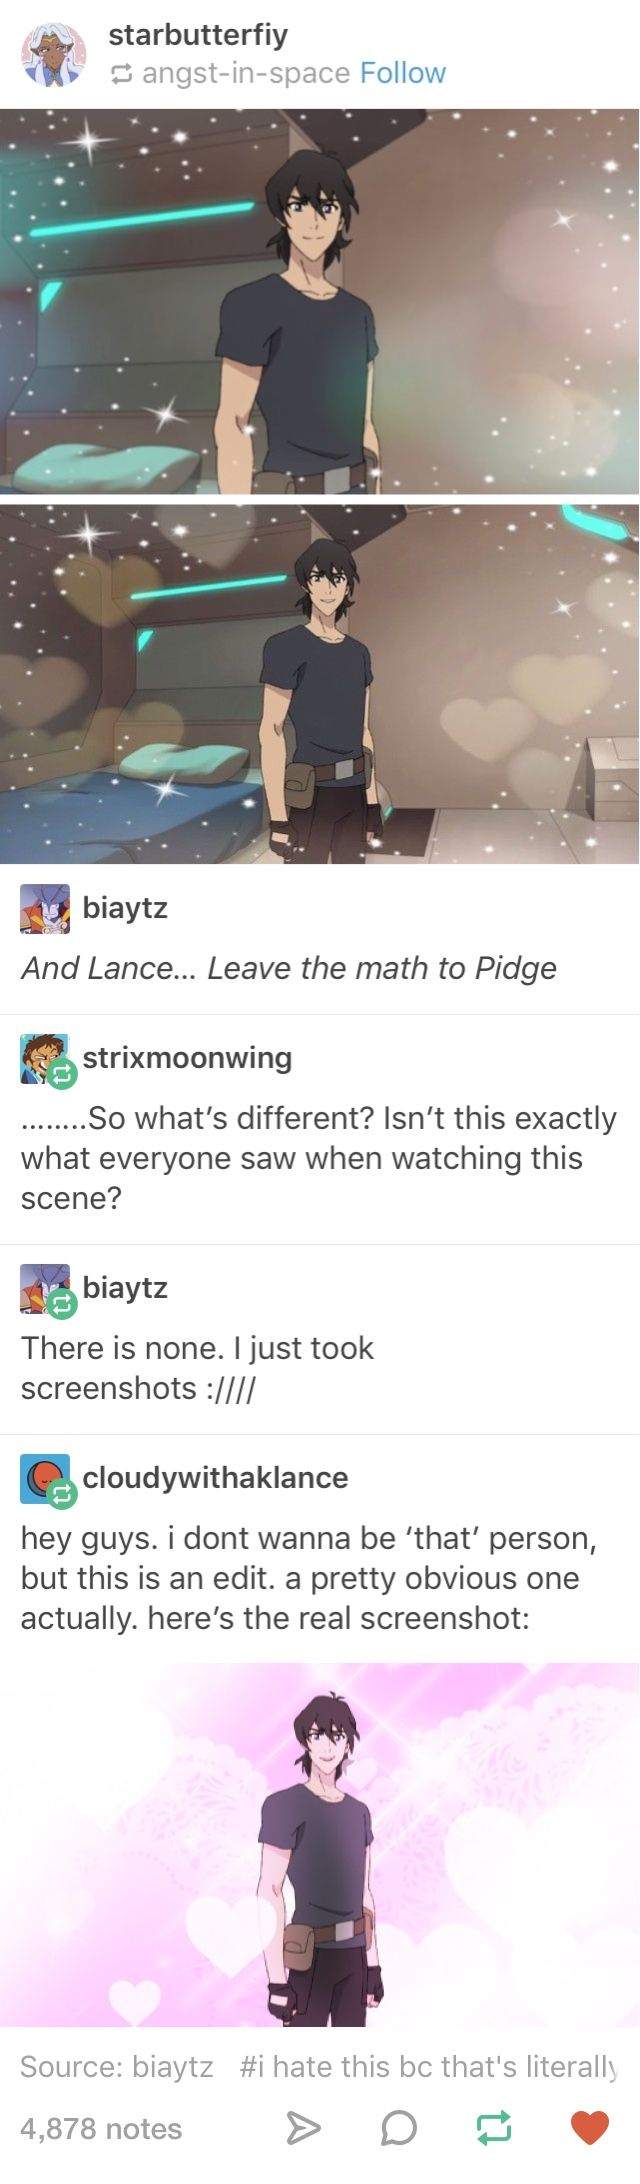 Isn't this what we all saw? | Voltron season 3 spoilers